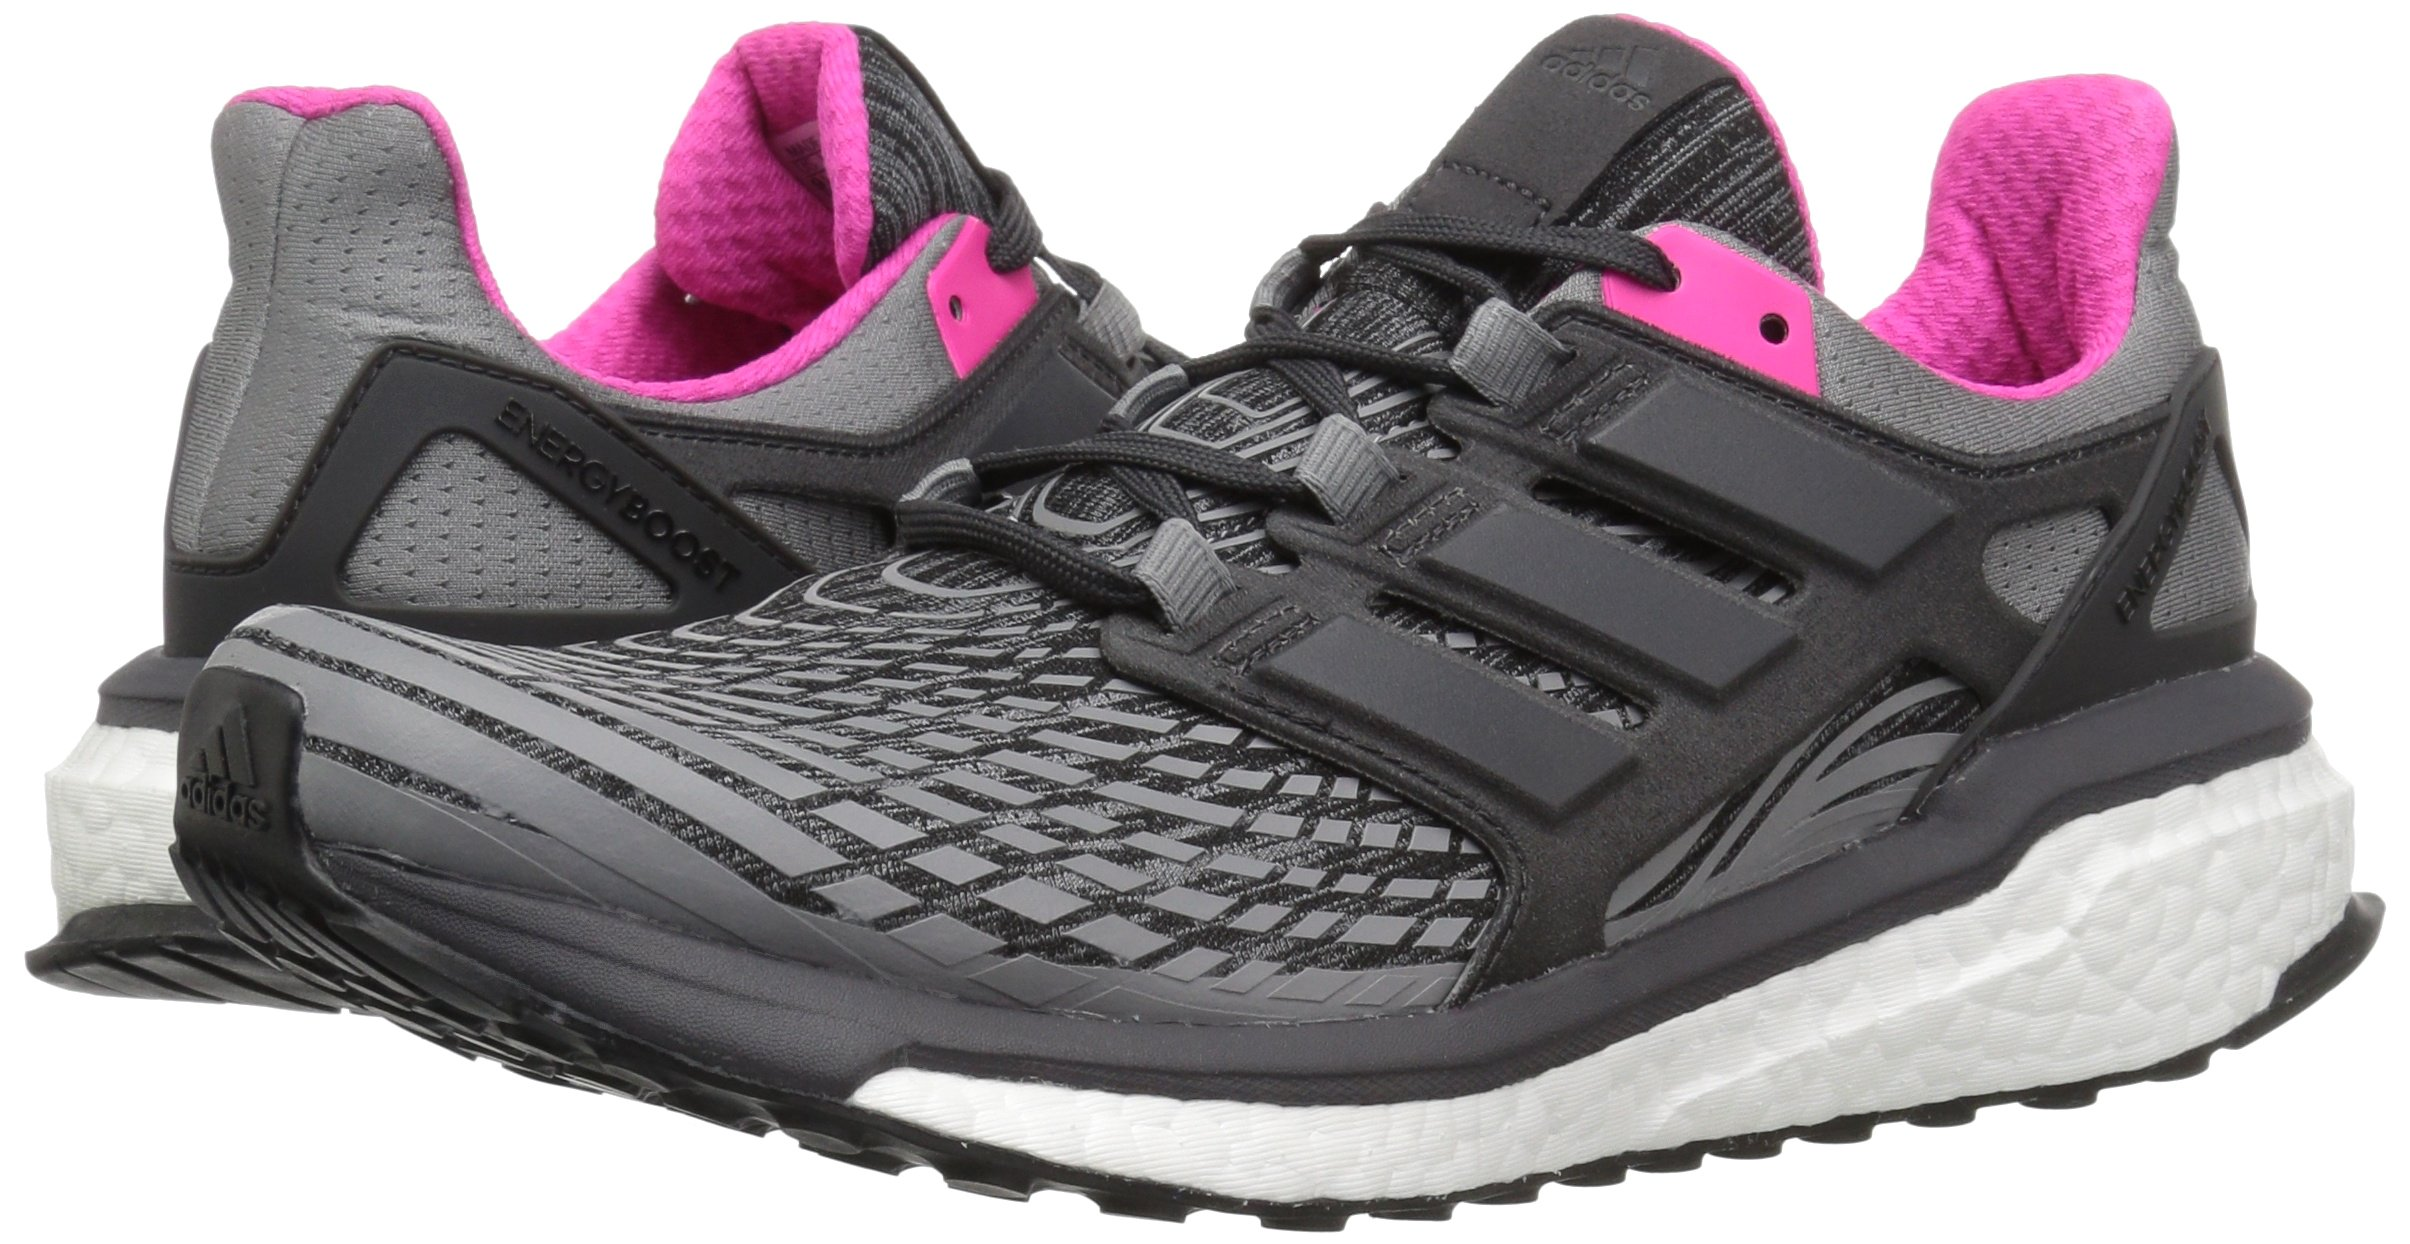 81S3gay2J6L - adidas Womens Energy Boost Fabric Low Top Lace Up Running Sneaker